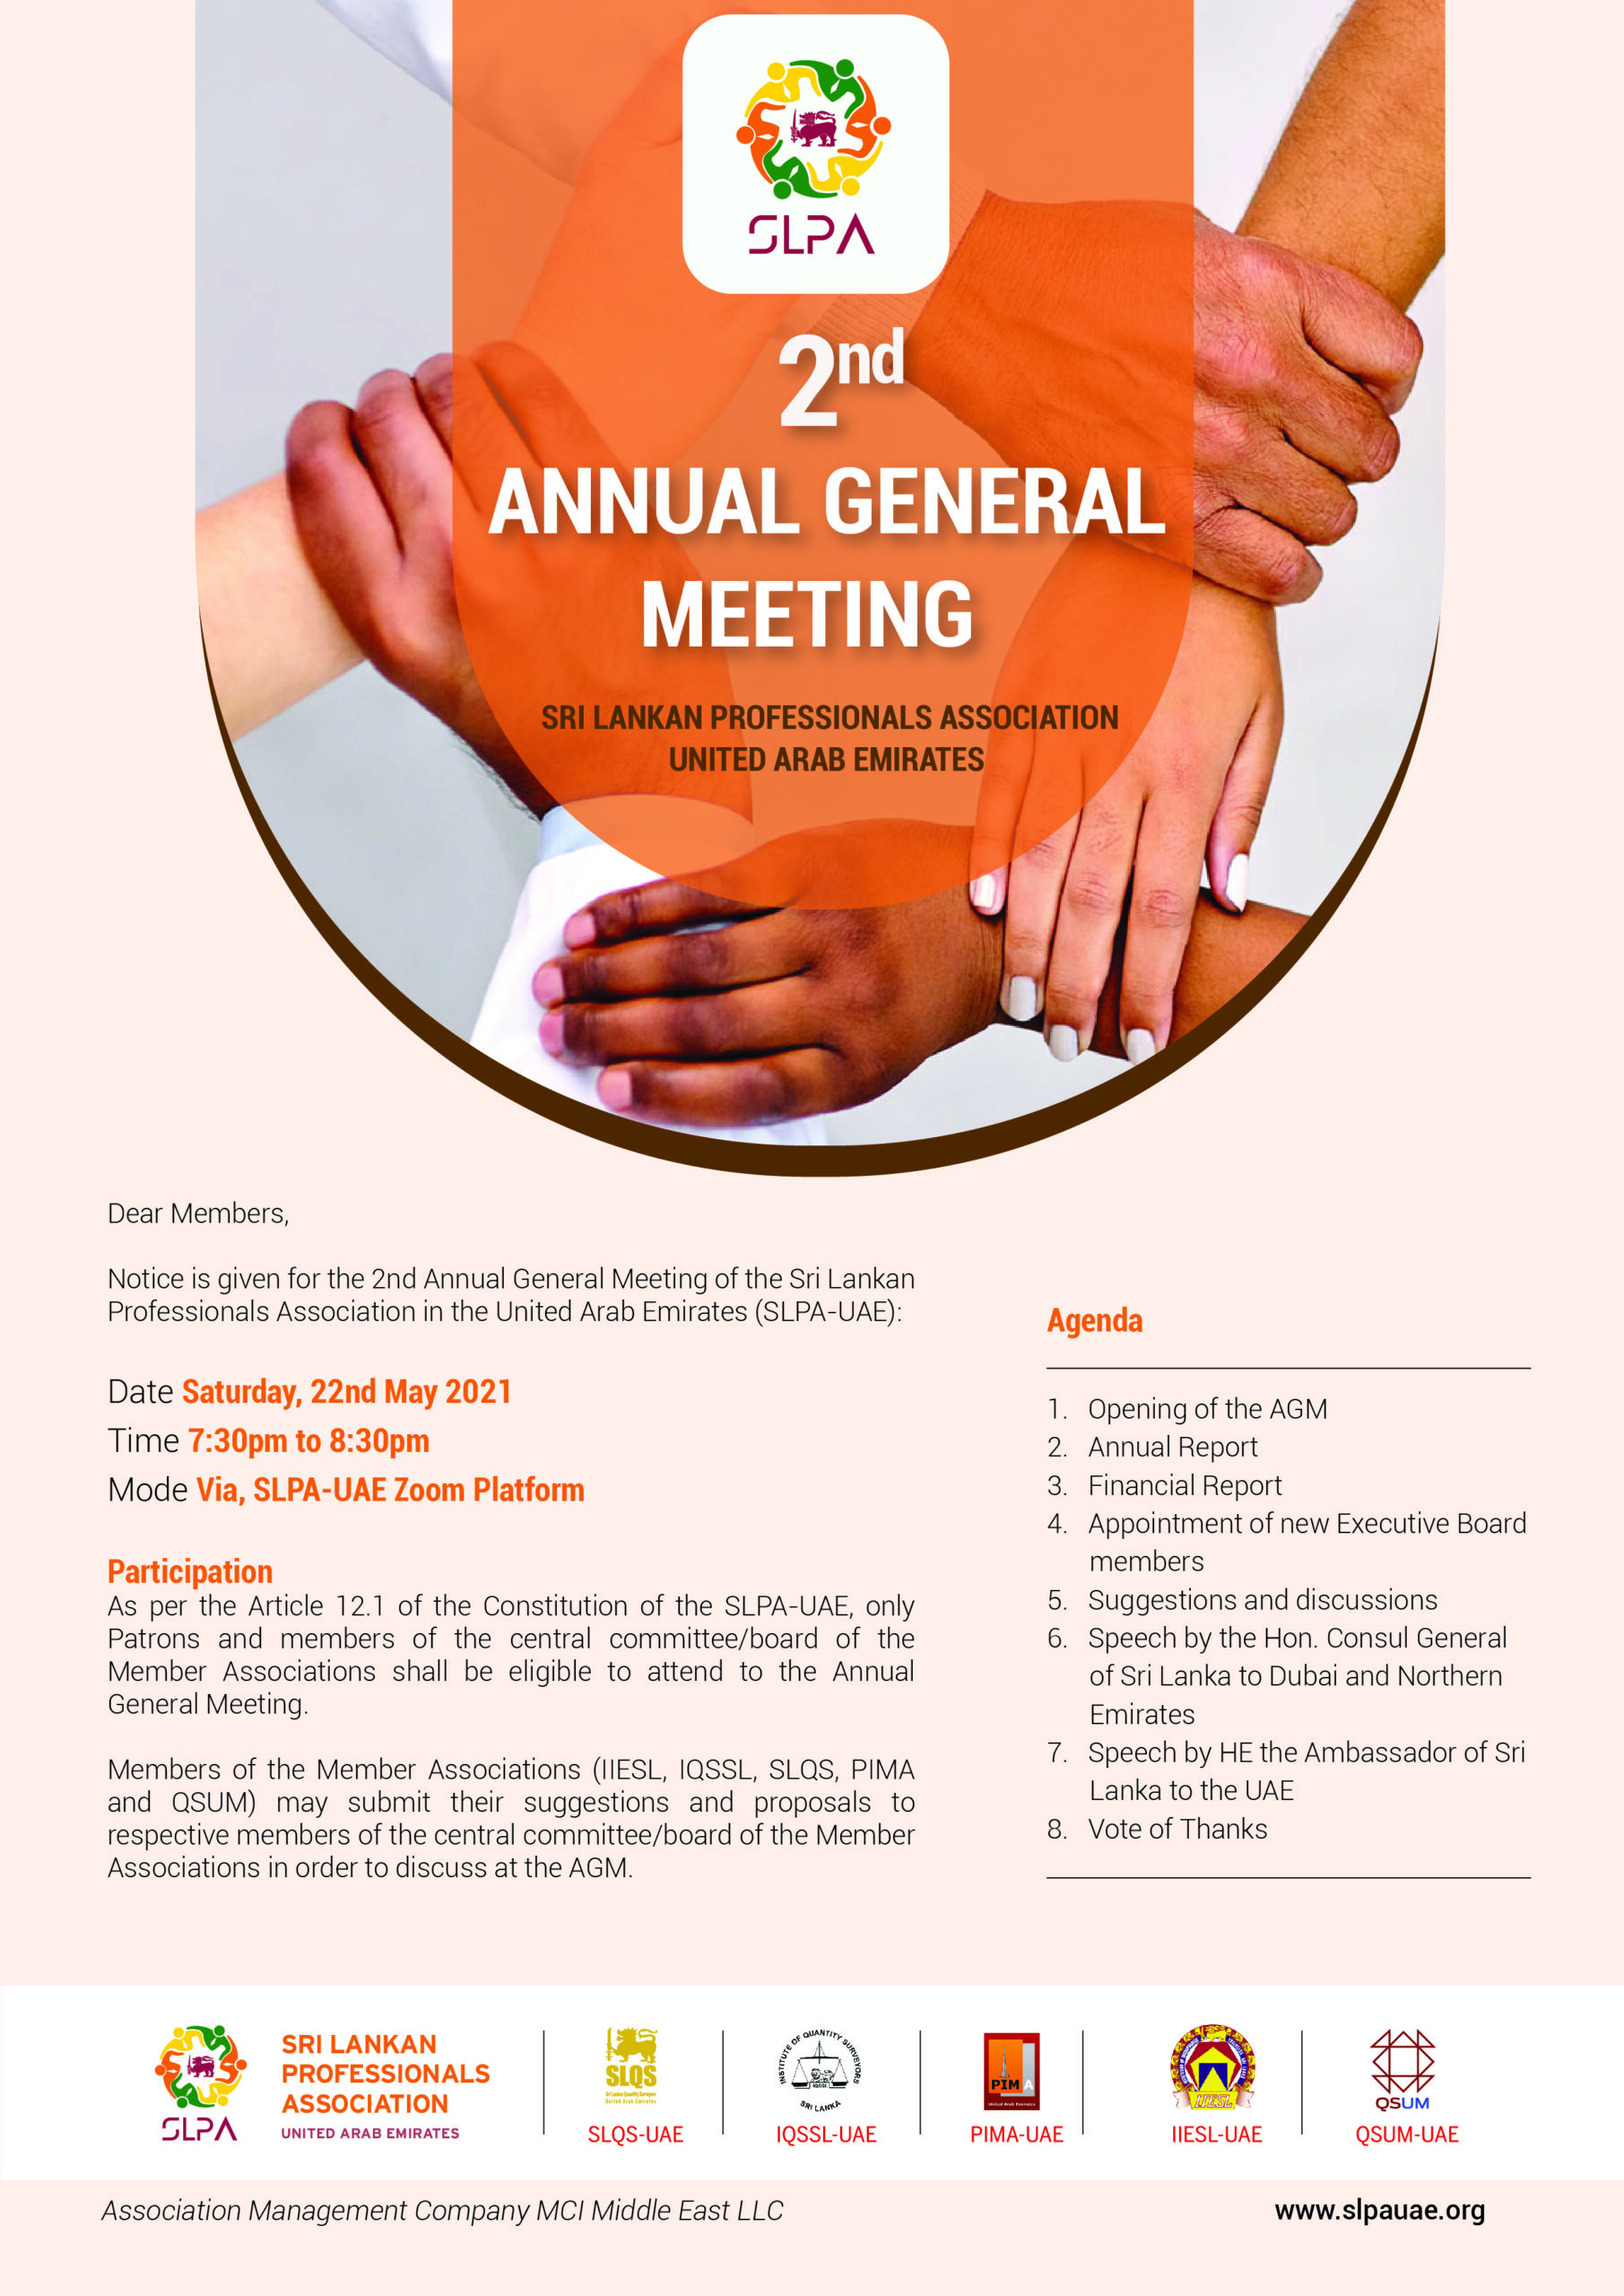 2nd Annual General Meeting